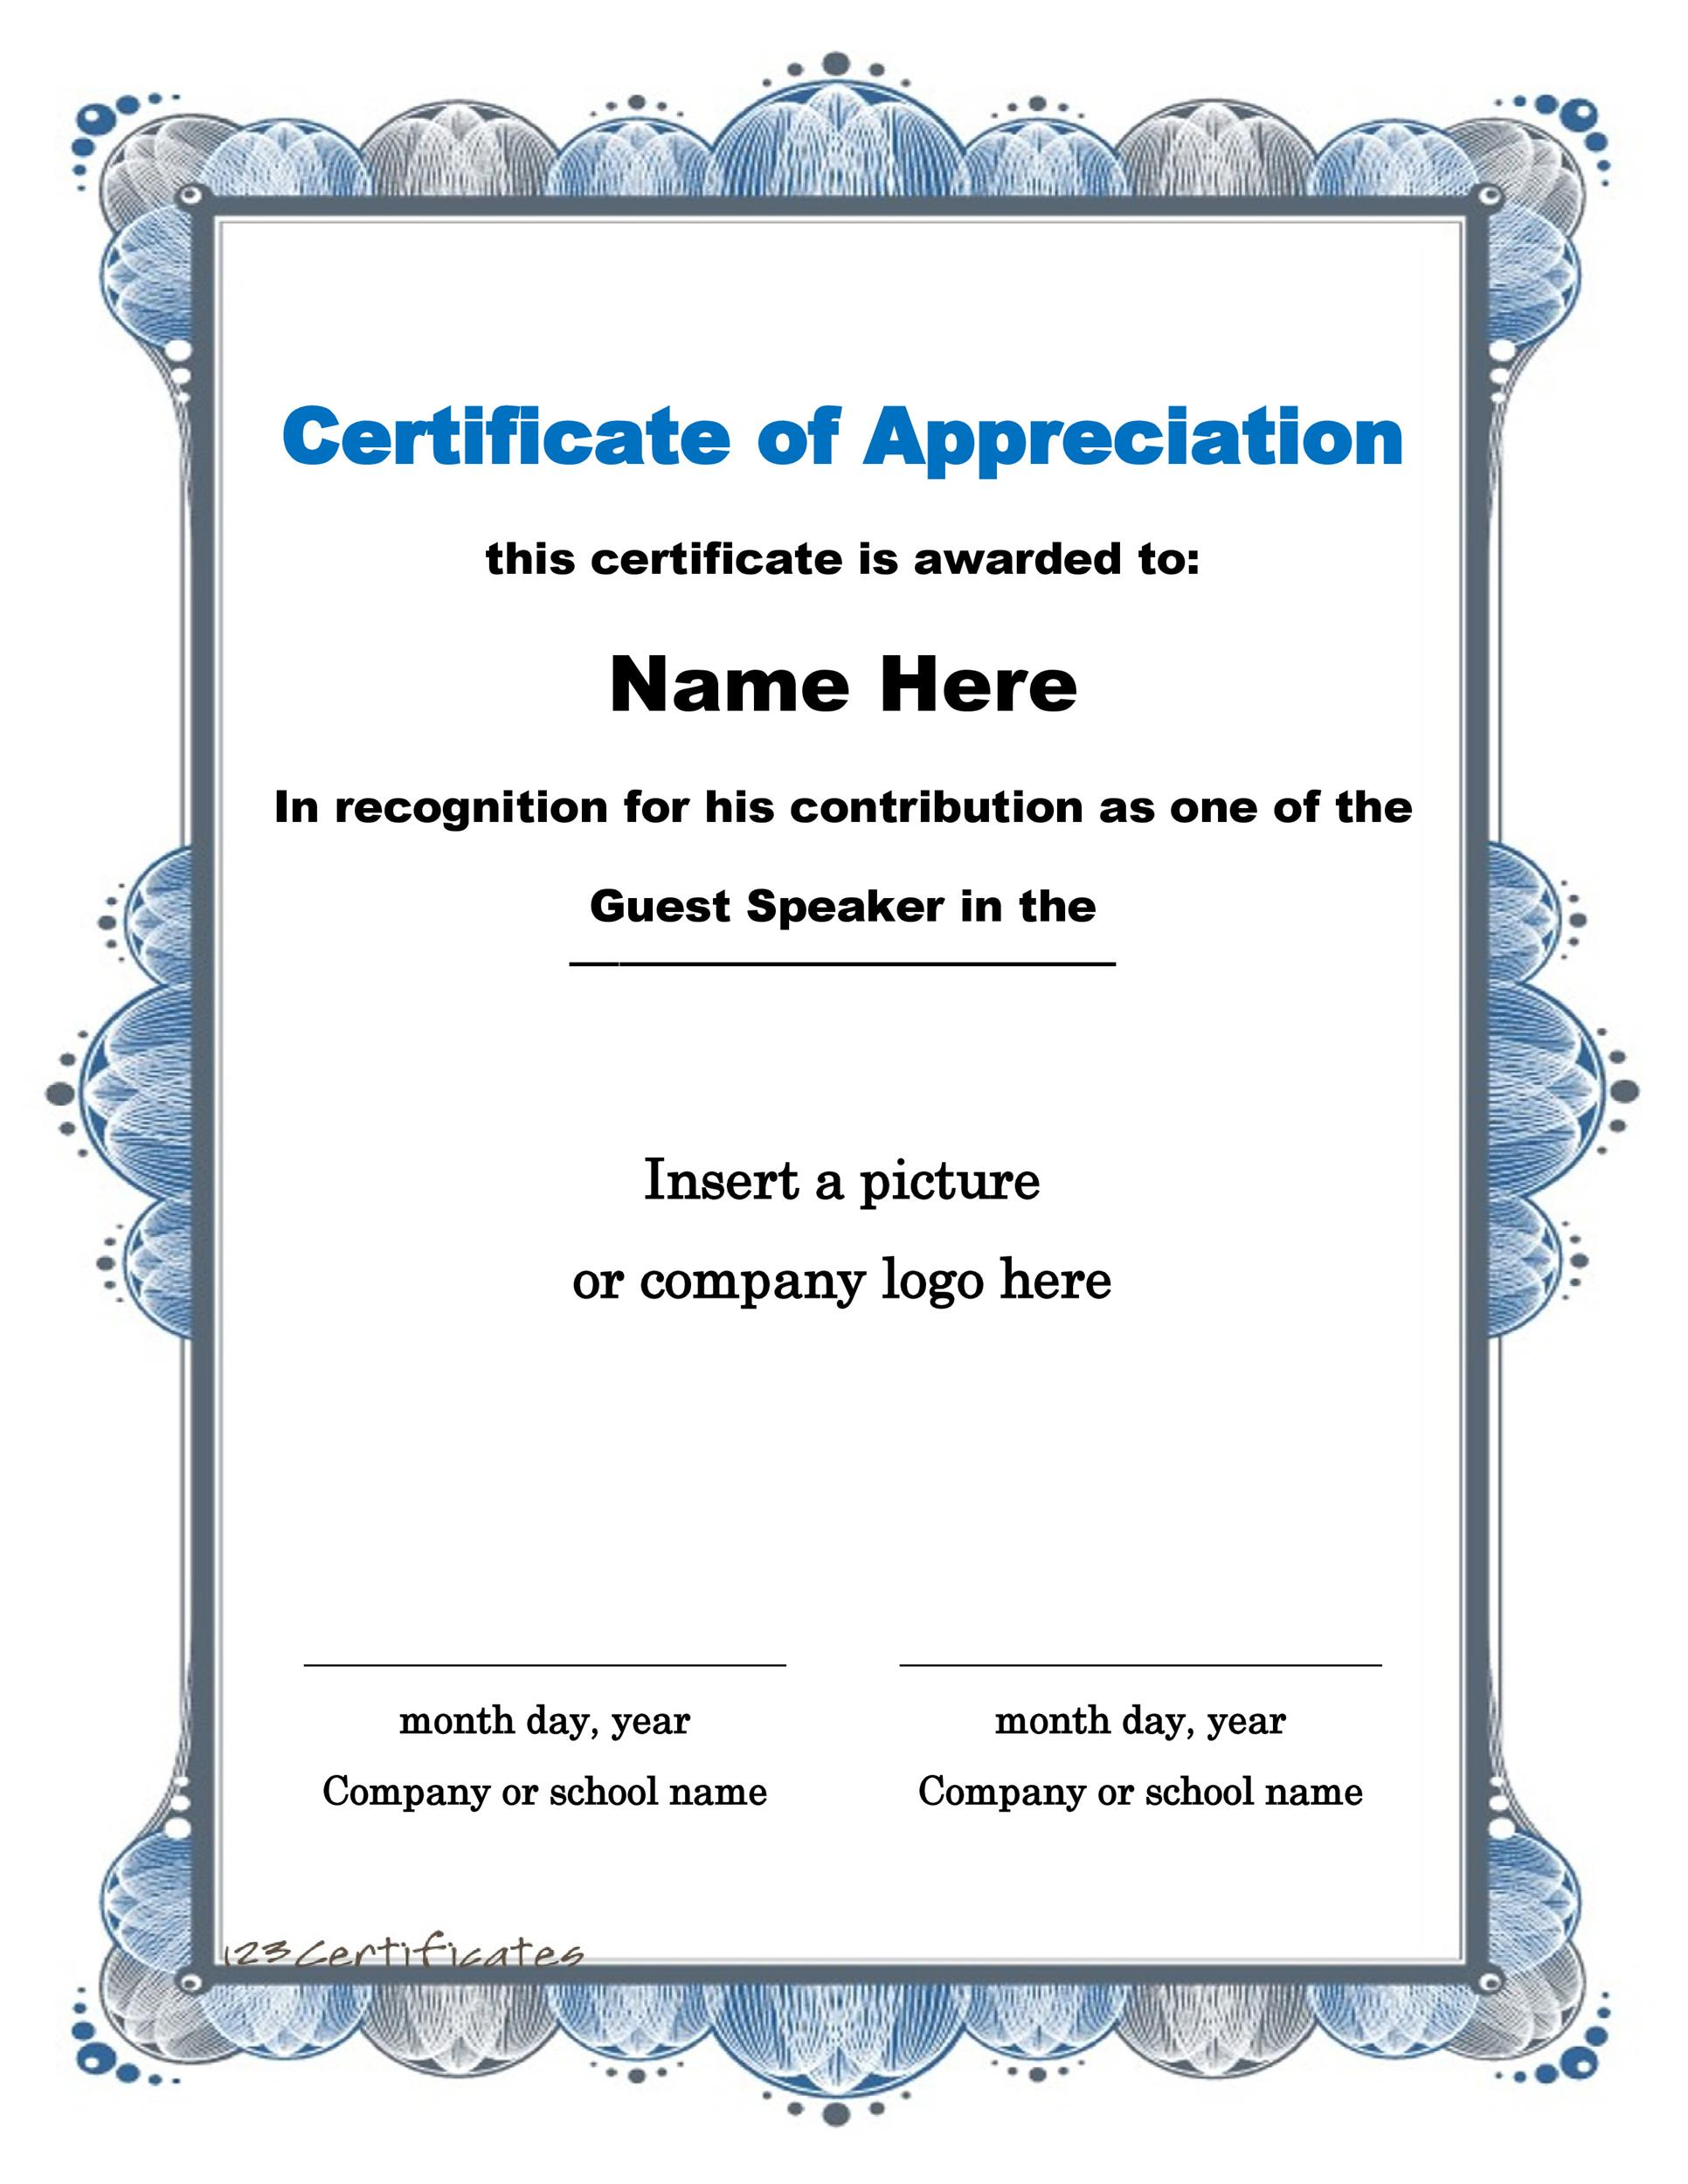 30 free certificate of appreciation templates and letters printable certificate of appreciation 02 yadclub